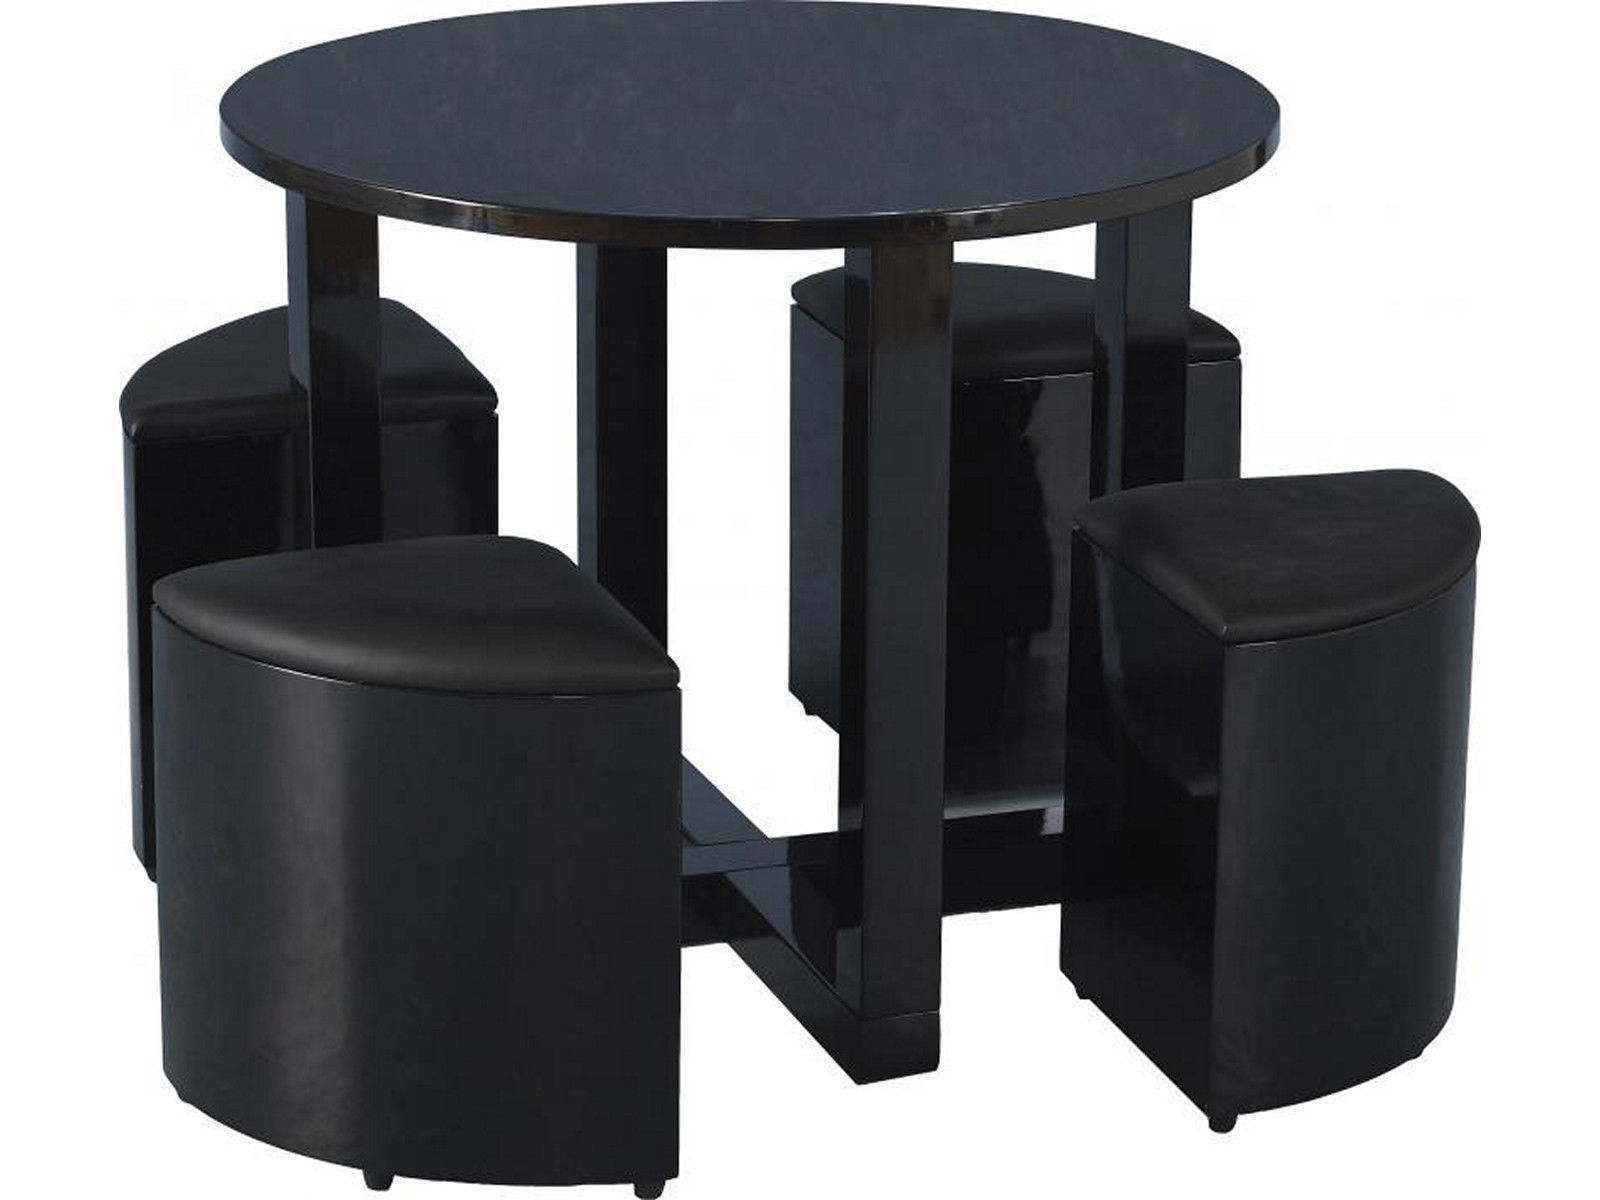 Terrific Details About High Gloss Round Stowaway Dining Table And Chair Set With 4 Seats Black Gloss Home Interior And Landscaping Ologienasavecom